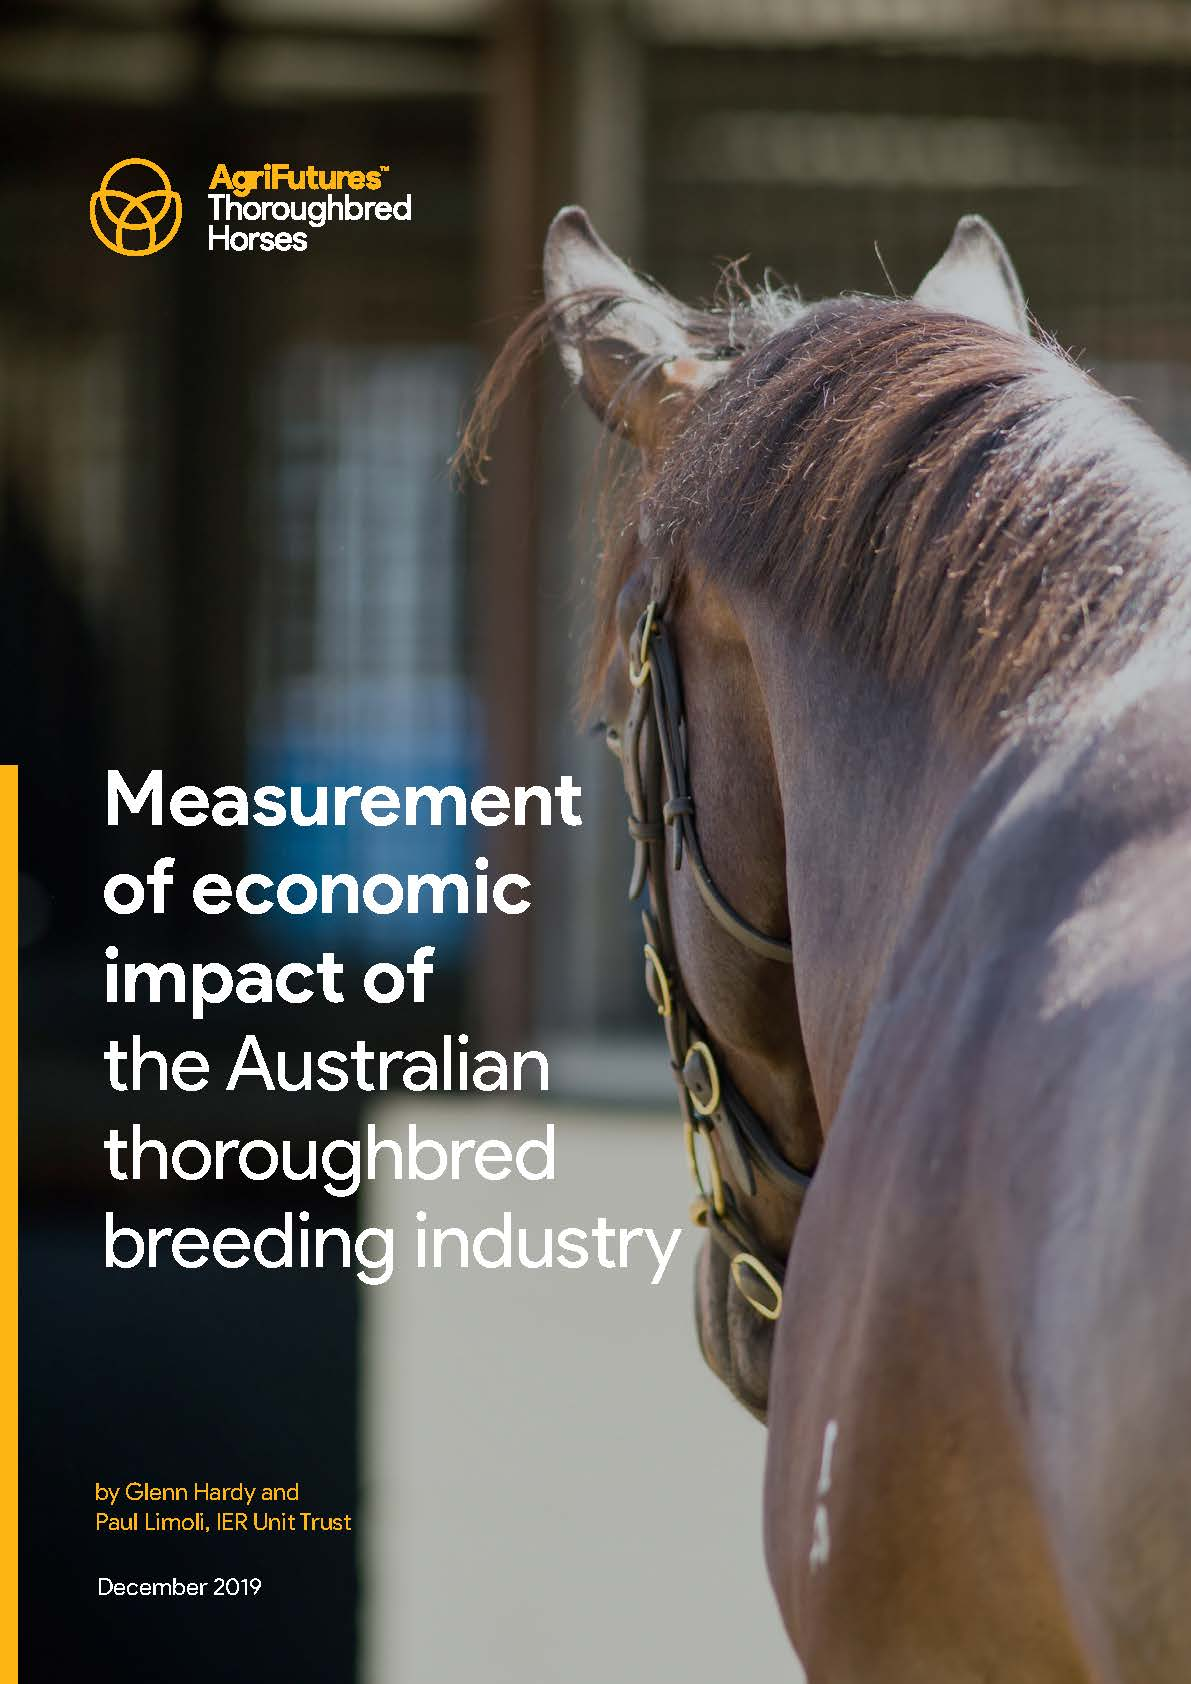 Measurement of economic impact of the Australian thoroughbred breeding industry - image